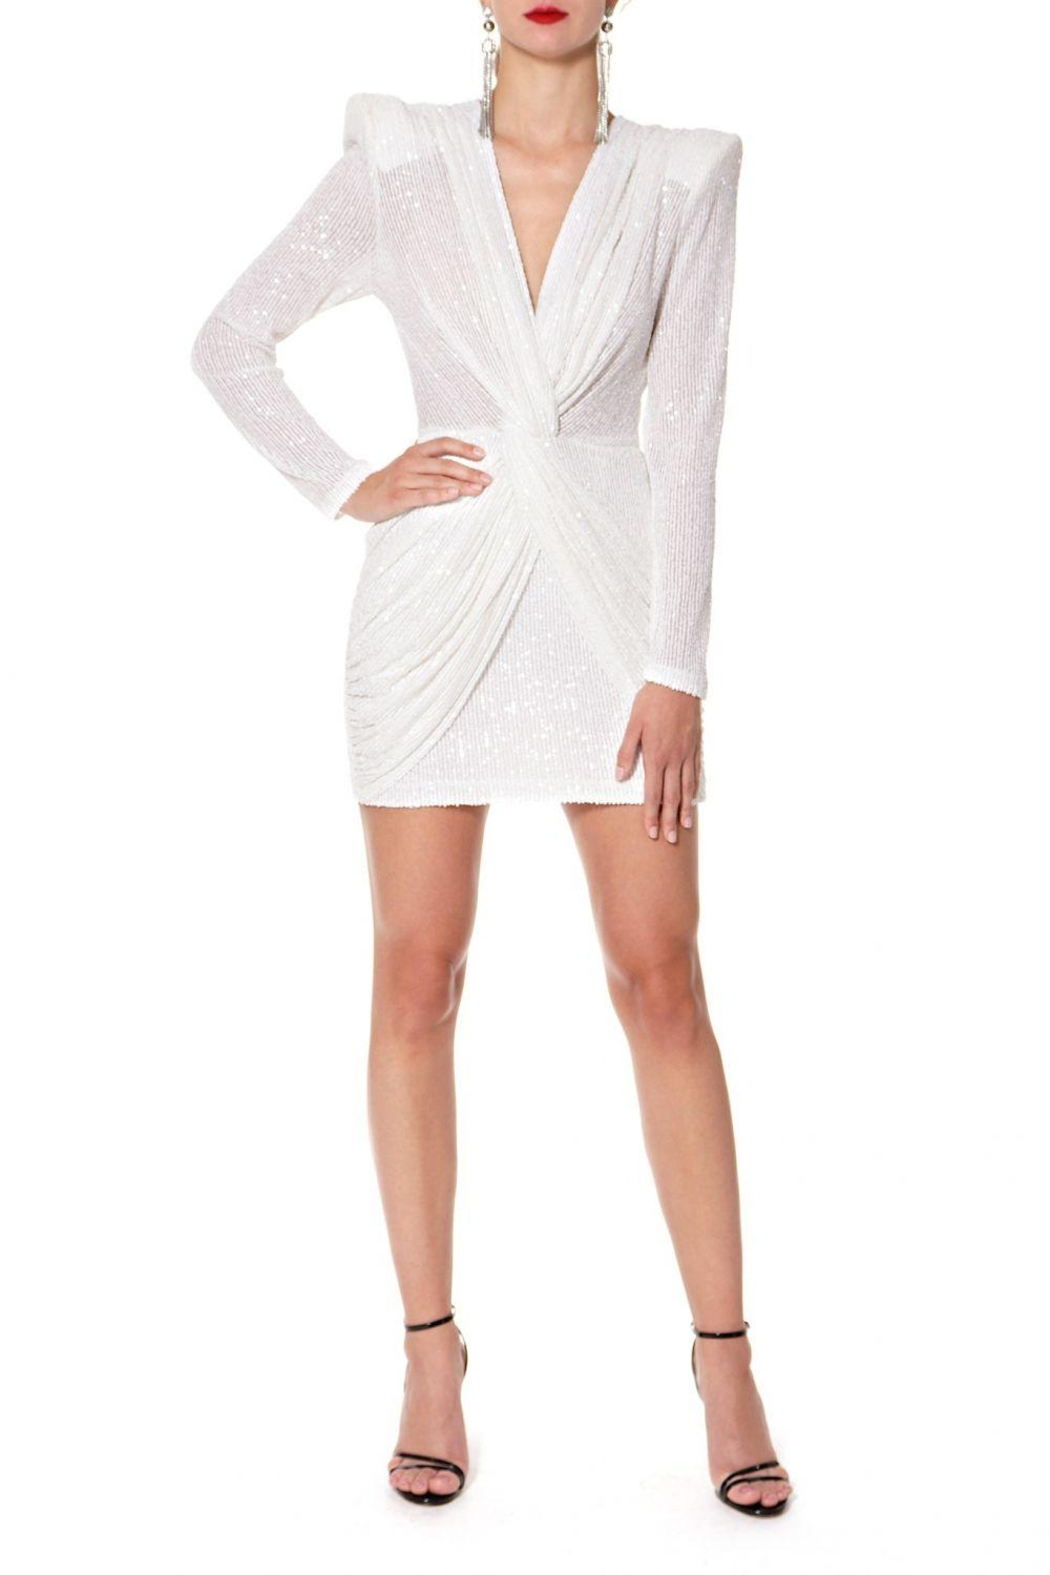 AGGI Dress Jennifer Super White - Main Image